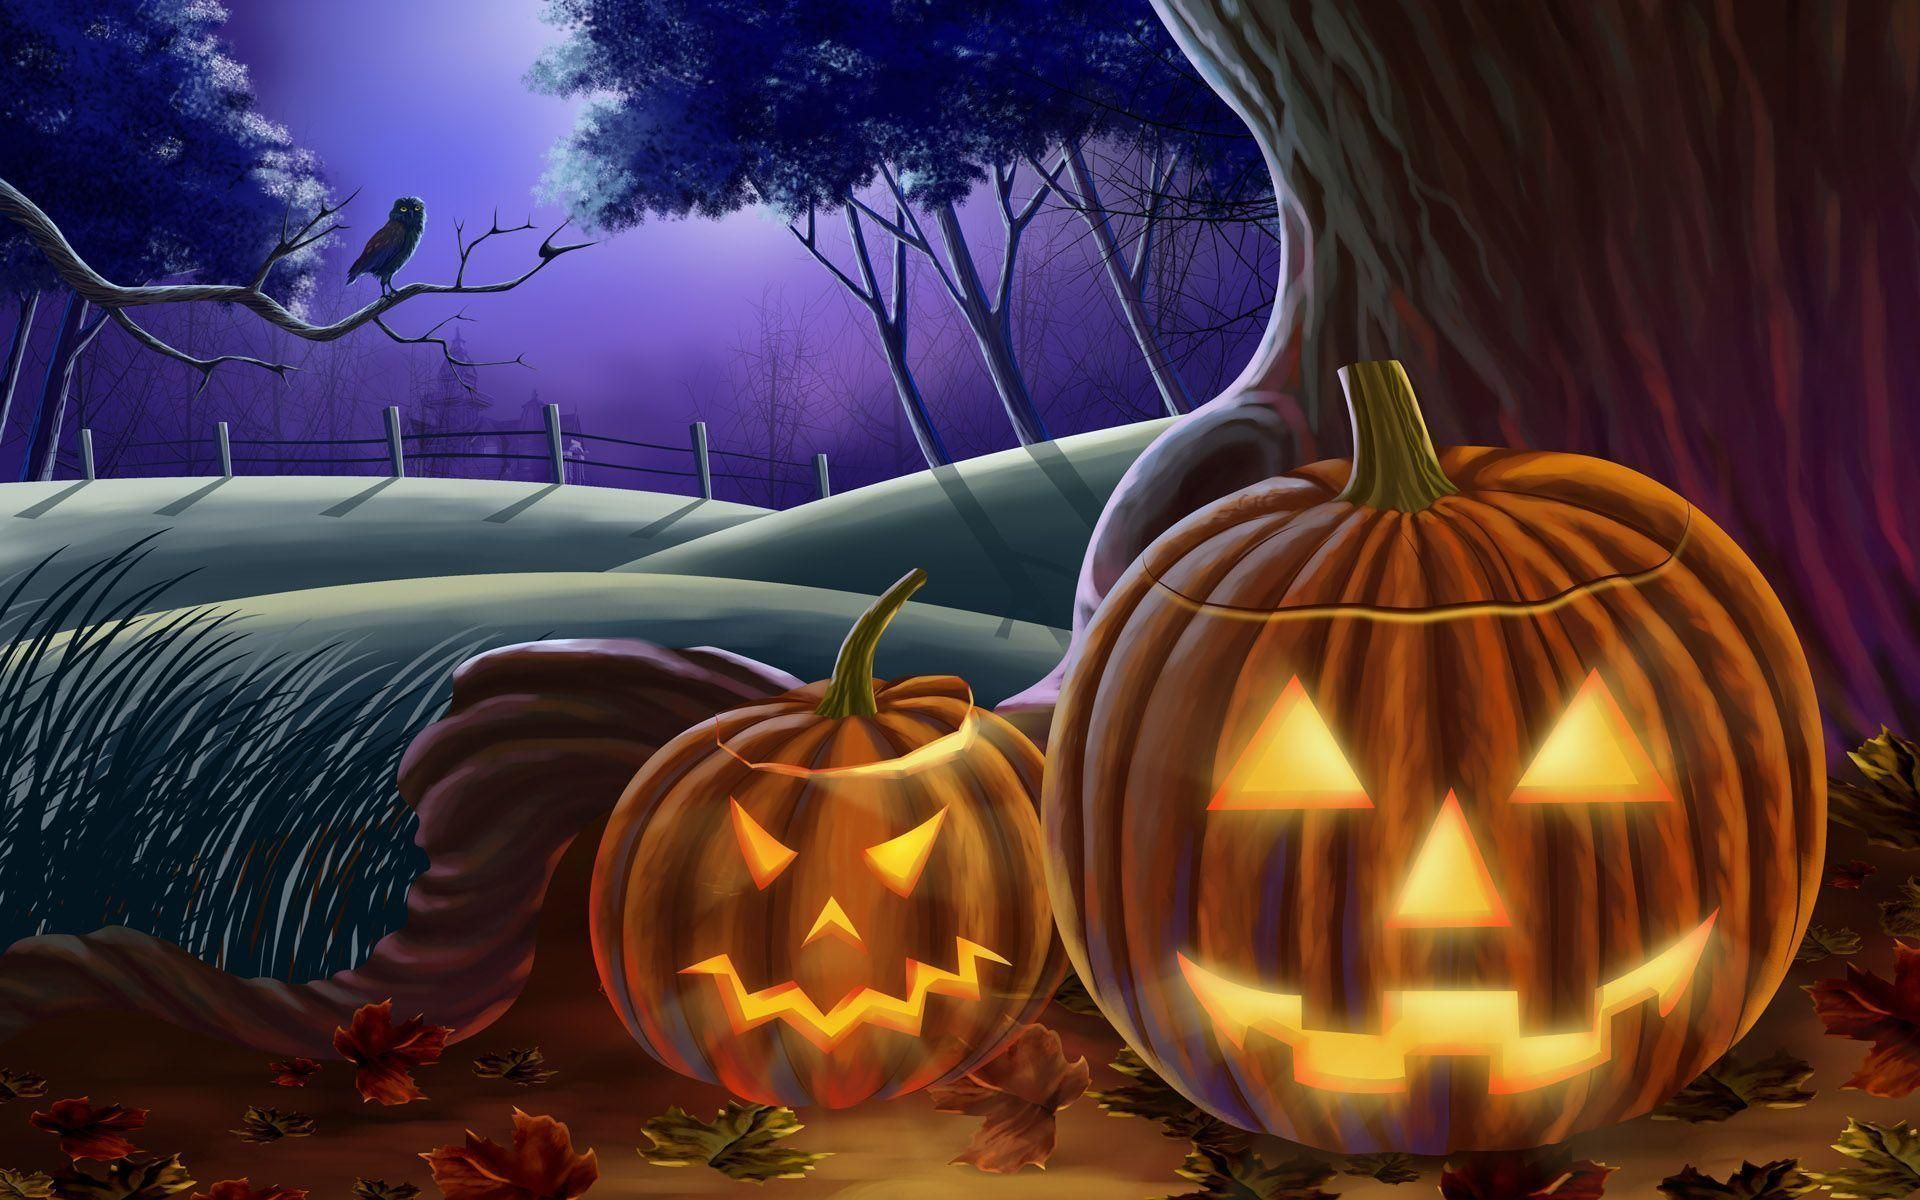 halloween backgrounds happy desktop background theme wallpapers cute fall samhain scary halooween hallow spooky creepy country #halloweenbackgroundswallpapers halloween backgrounds happy desktop background theme wallpapers cute fall samhain scary halooween hallow spooky creepy country #halloweenbackgroundswallpapers